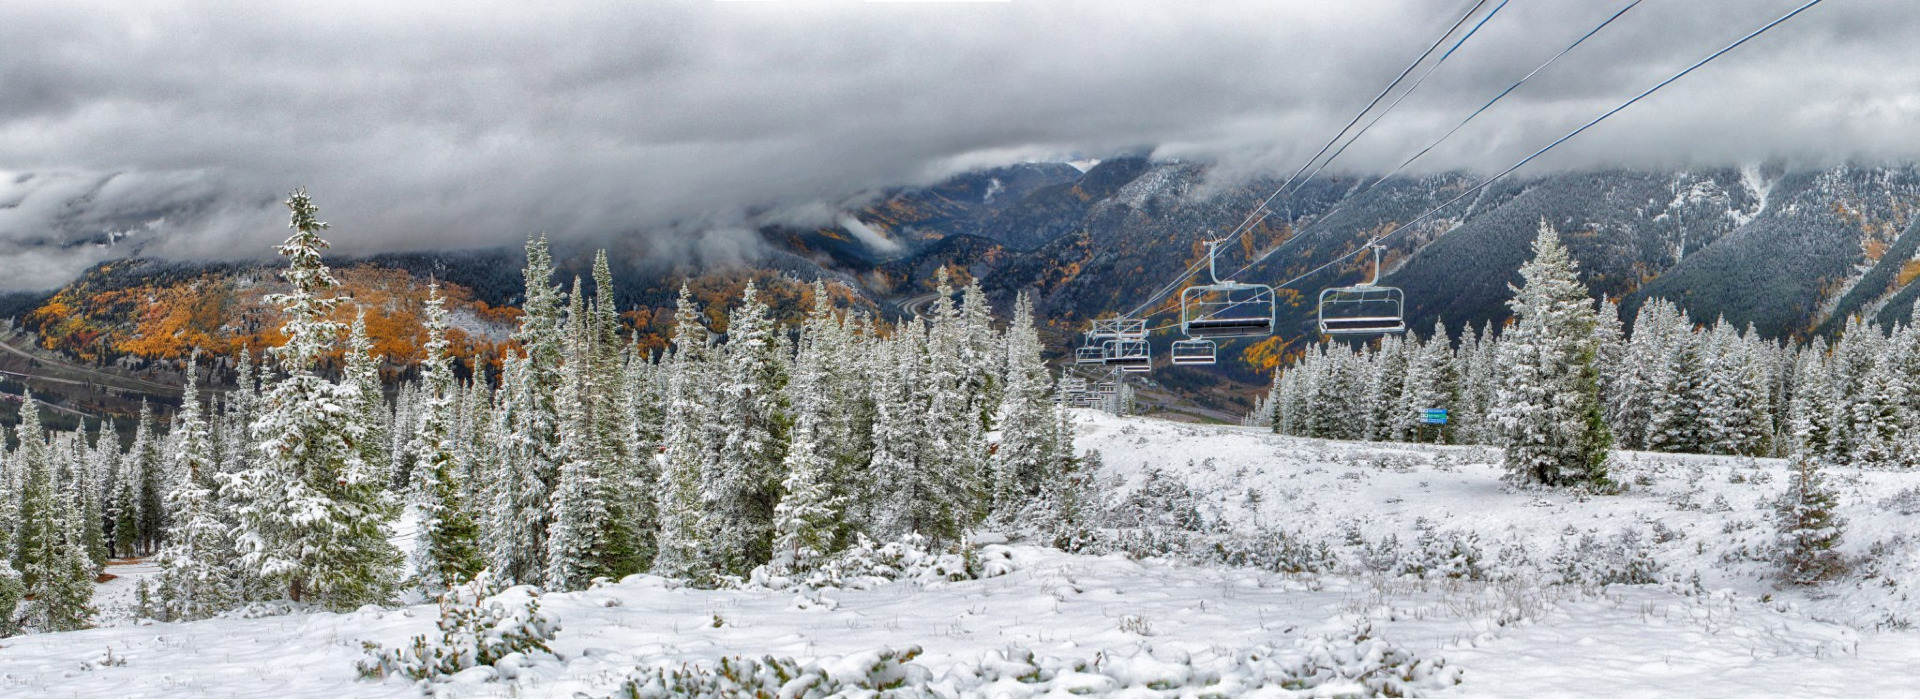 September snowfall at Copper Mountain - © Tripp Fay